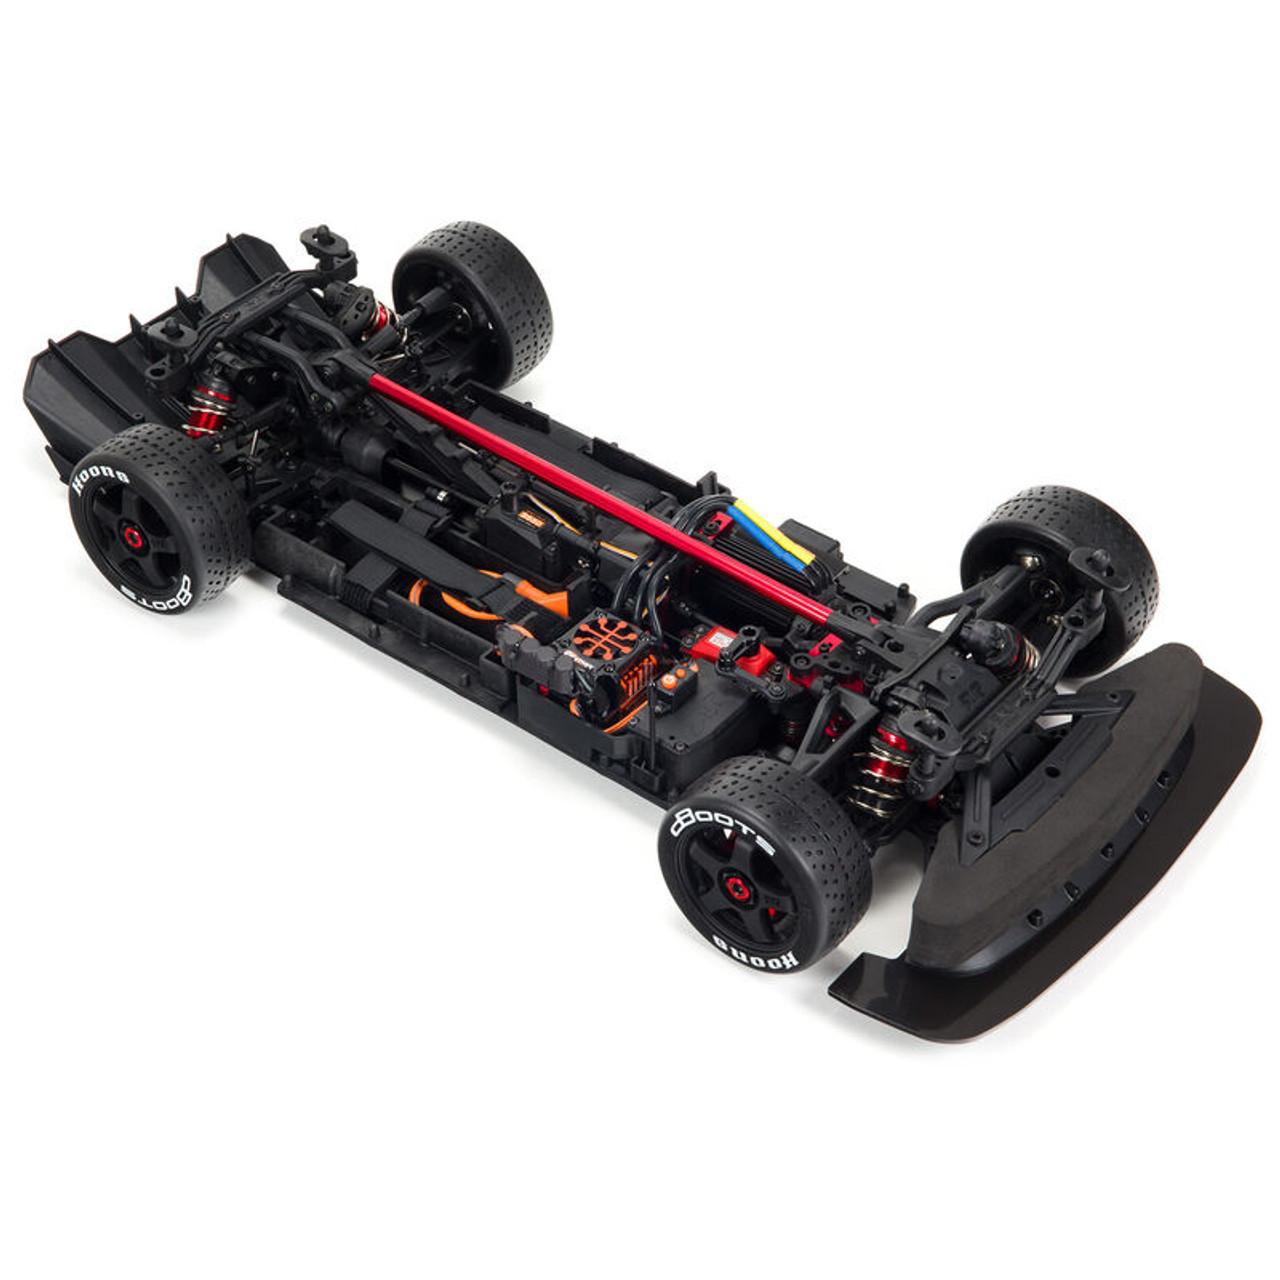 Arrma Infraction V2 6S BLX Brushless 1/7 RTR Electric 4WD Street Bash Truck, Blue w/DX3 2.4GHz Radio, Smart ESC and AVC